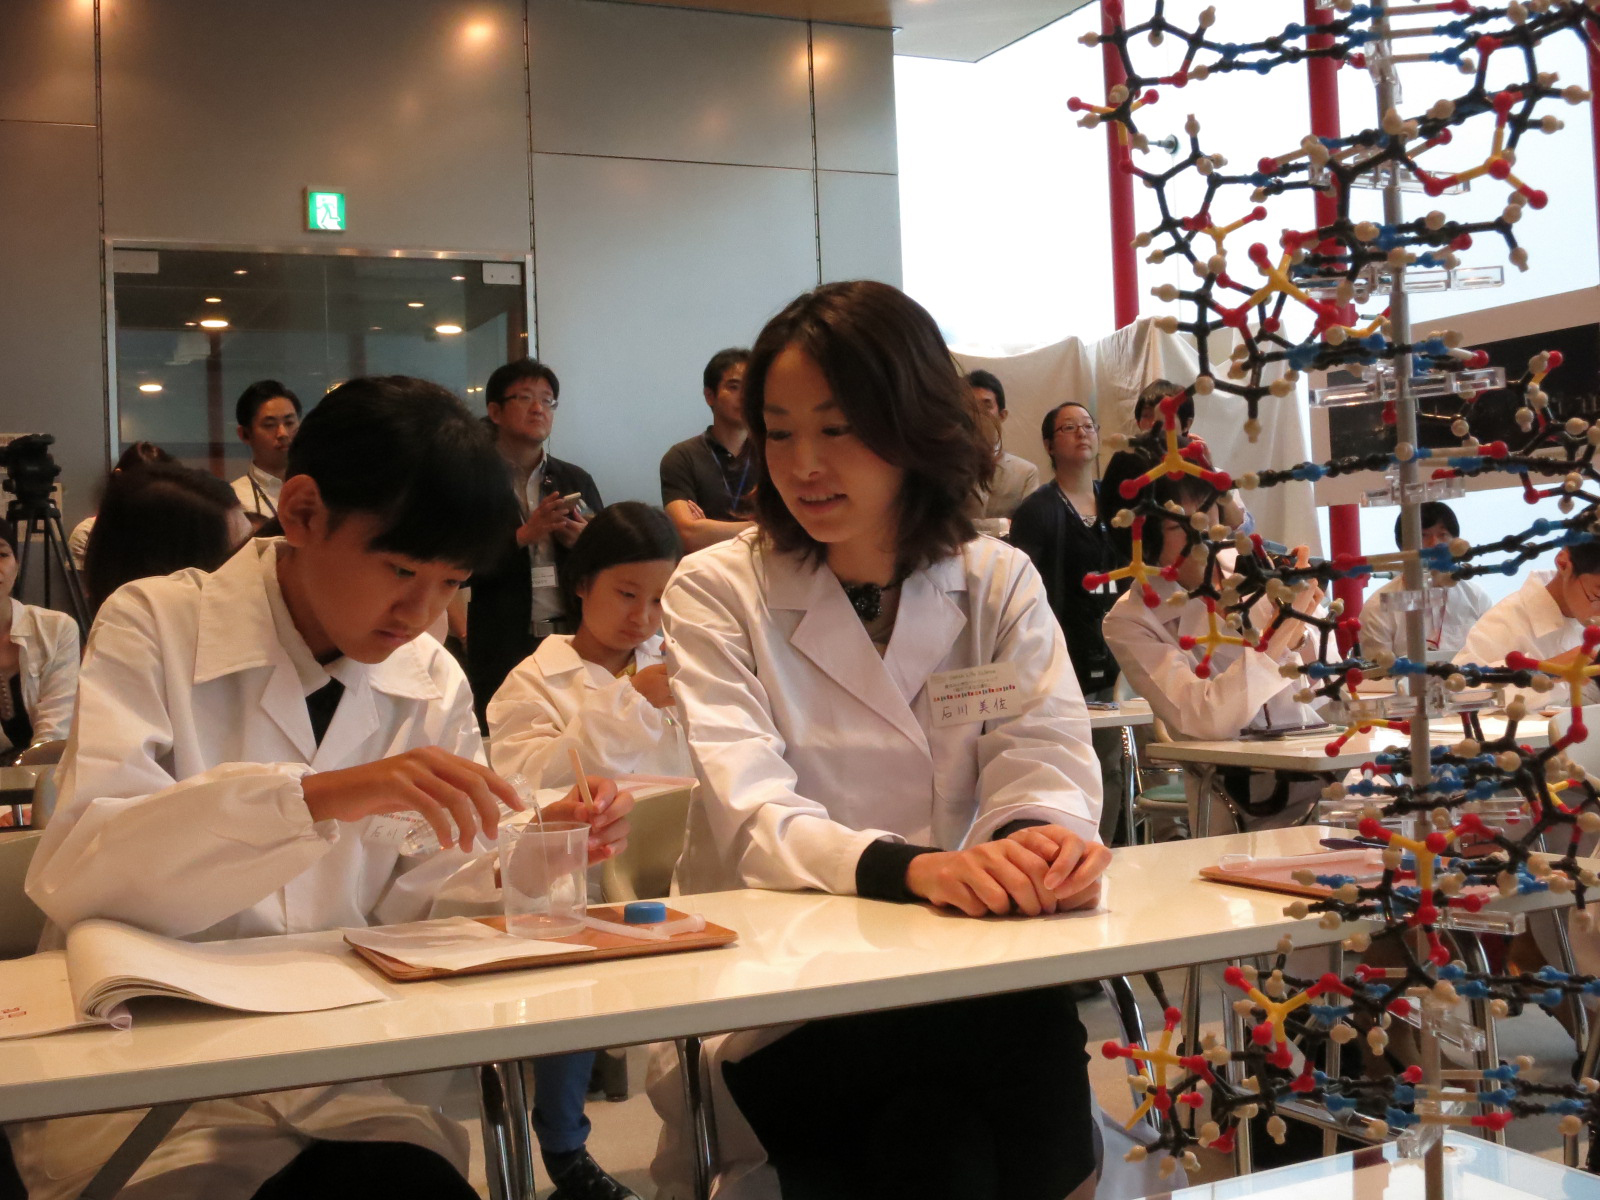 Families at an informational workshop on DNA hosted by DeNA Co. at the University of Tokyo's Institute of Medical Science try an experiment on Wednesday to see their own DNA.   KAZUAKI NAGATA